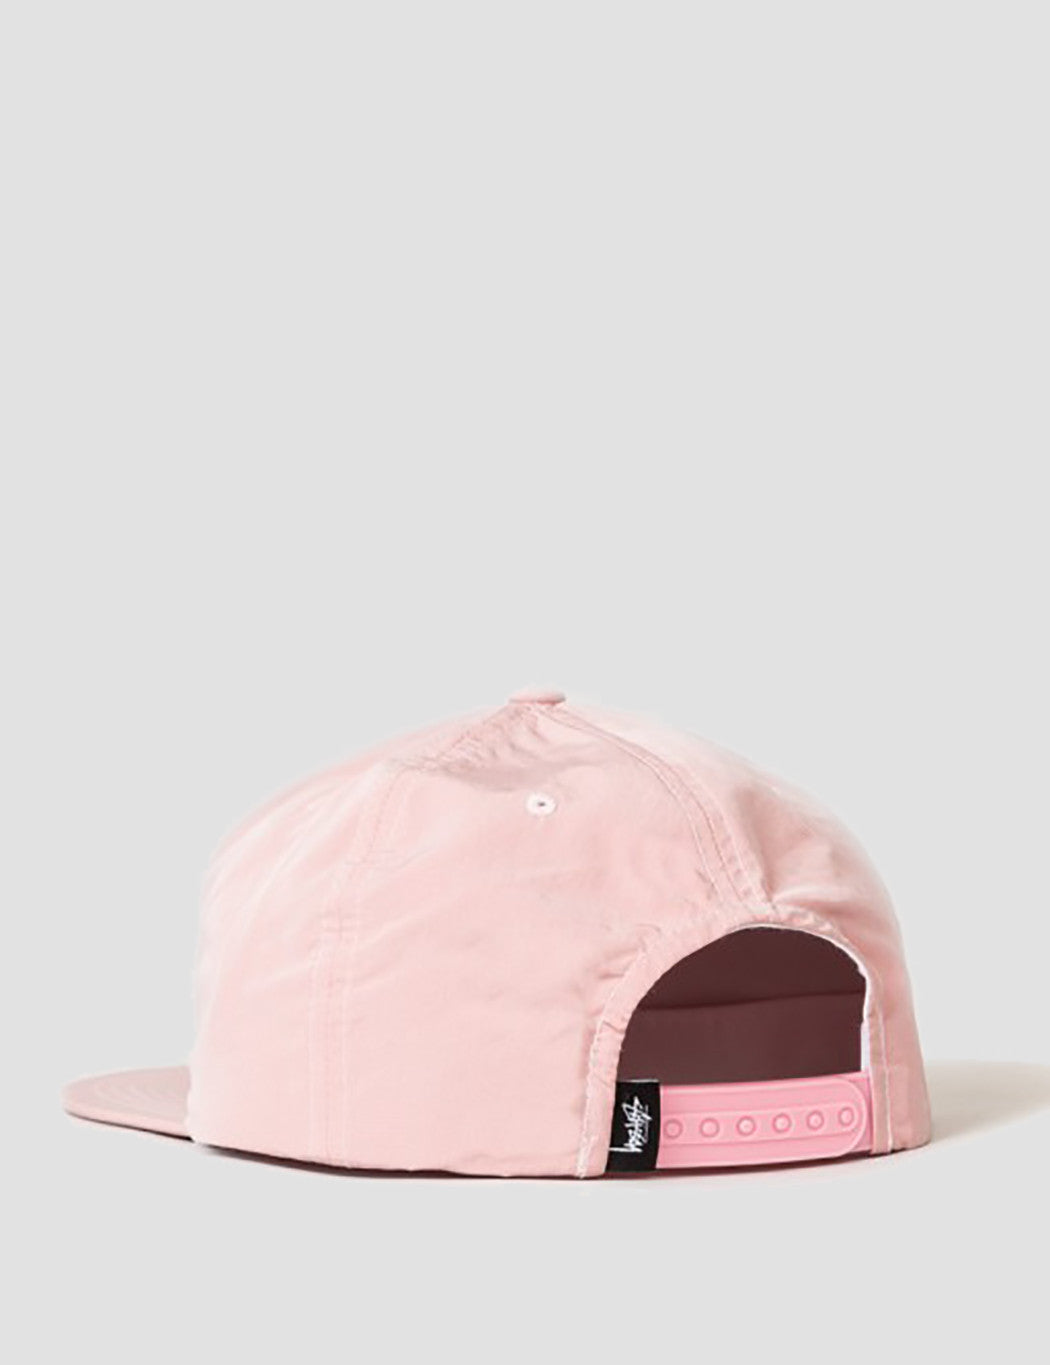 Stussy Reflective Tape Cap - Pink